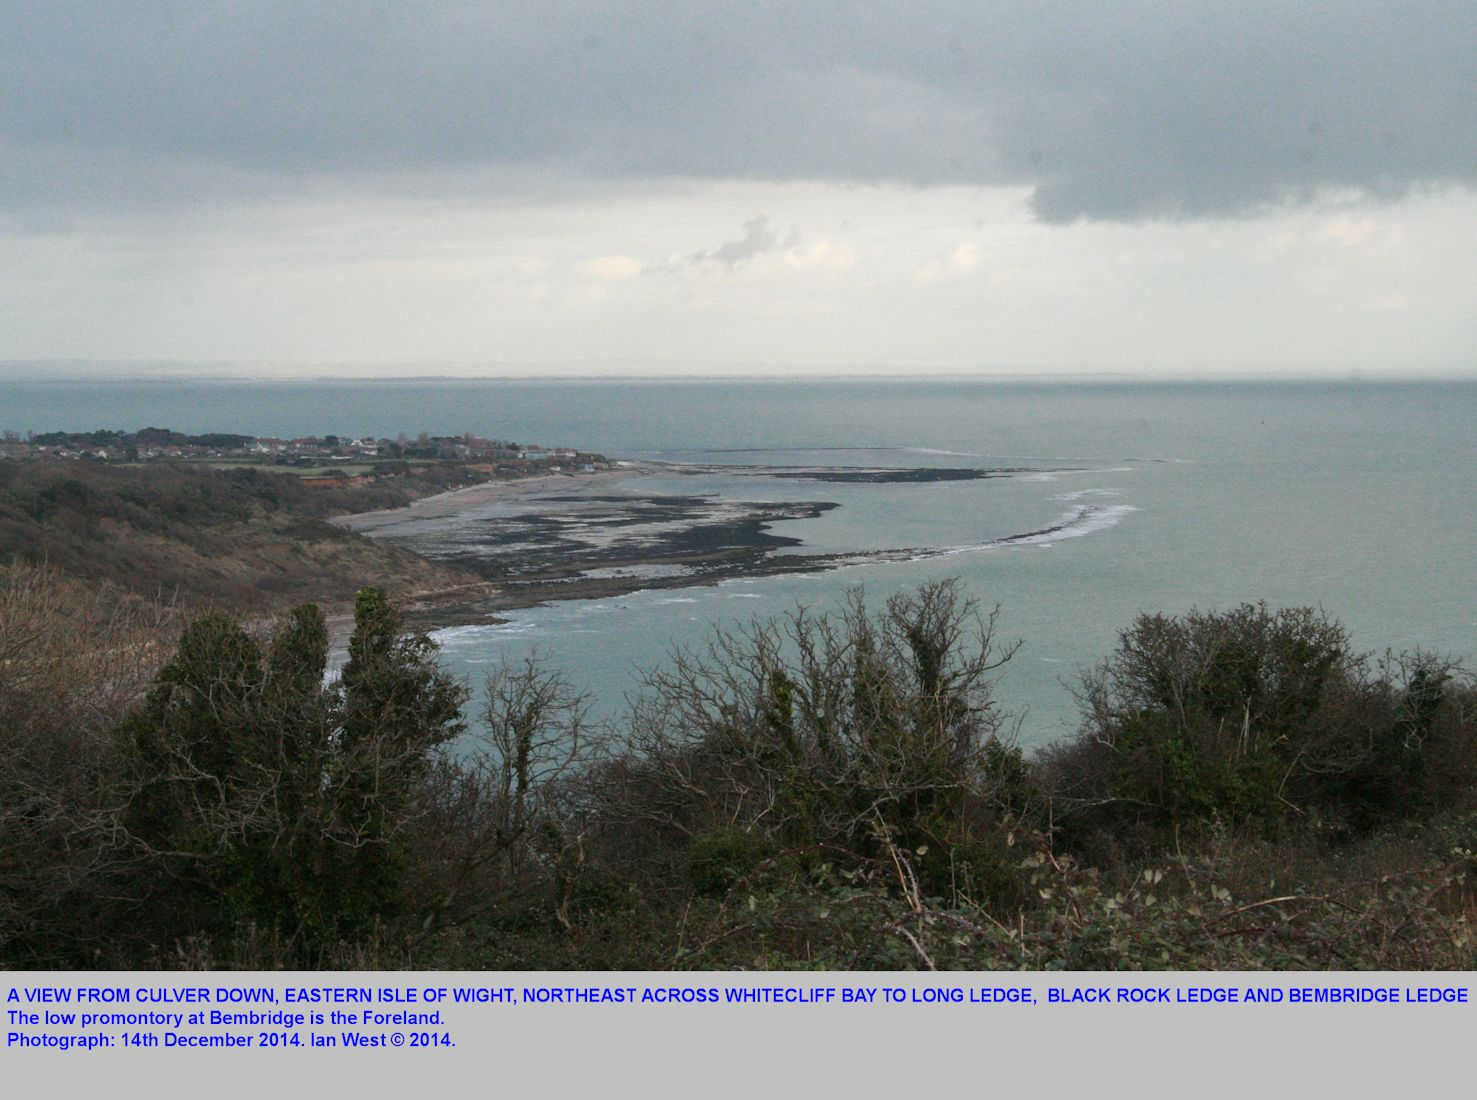 A view from Culver Down, northeastward across Whitecliff Bay to Long Ledge, Black Rock Ledge and Bembridge Ledge at the Foreland, Bembridge, Isle of Wight, 14th December 2014